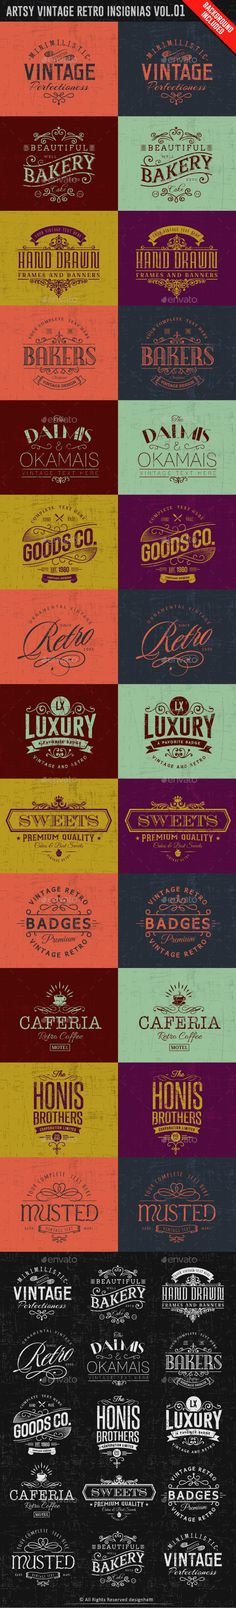 Artsy Vintage Retro Insignia and Logos Vol.01 - Badges & Stickers Template - Download Here : http://graphicriver.net/item/artsy-vintage-retro-insignia-and-logos-vol01/9945396?s_rank=23&ref=yinkira